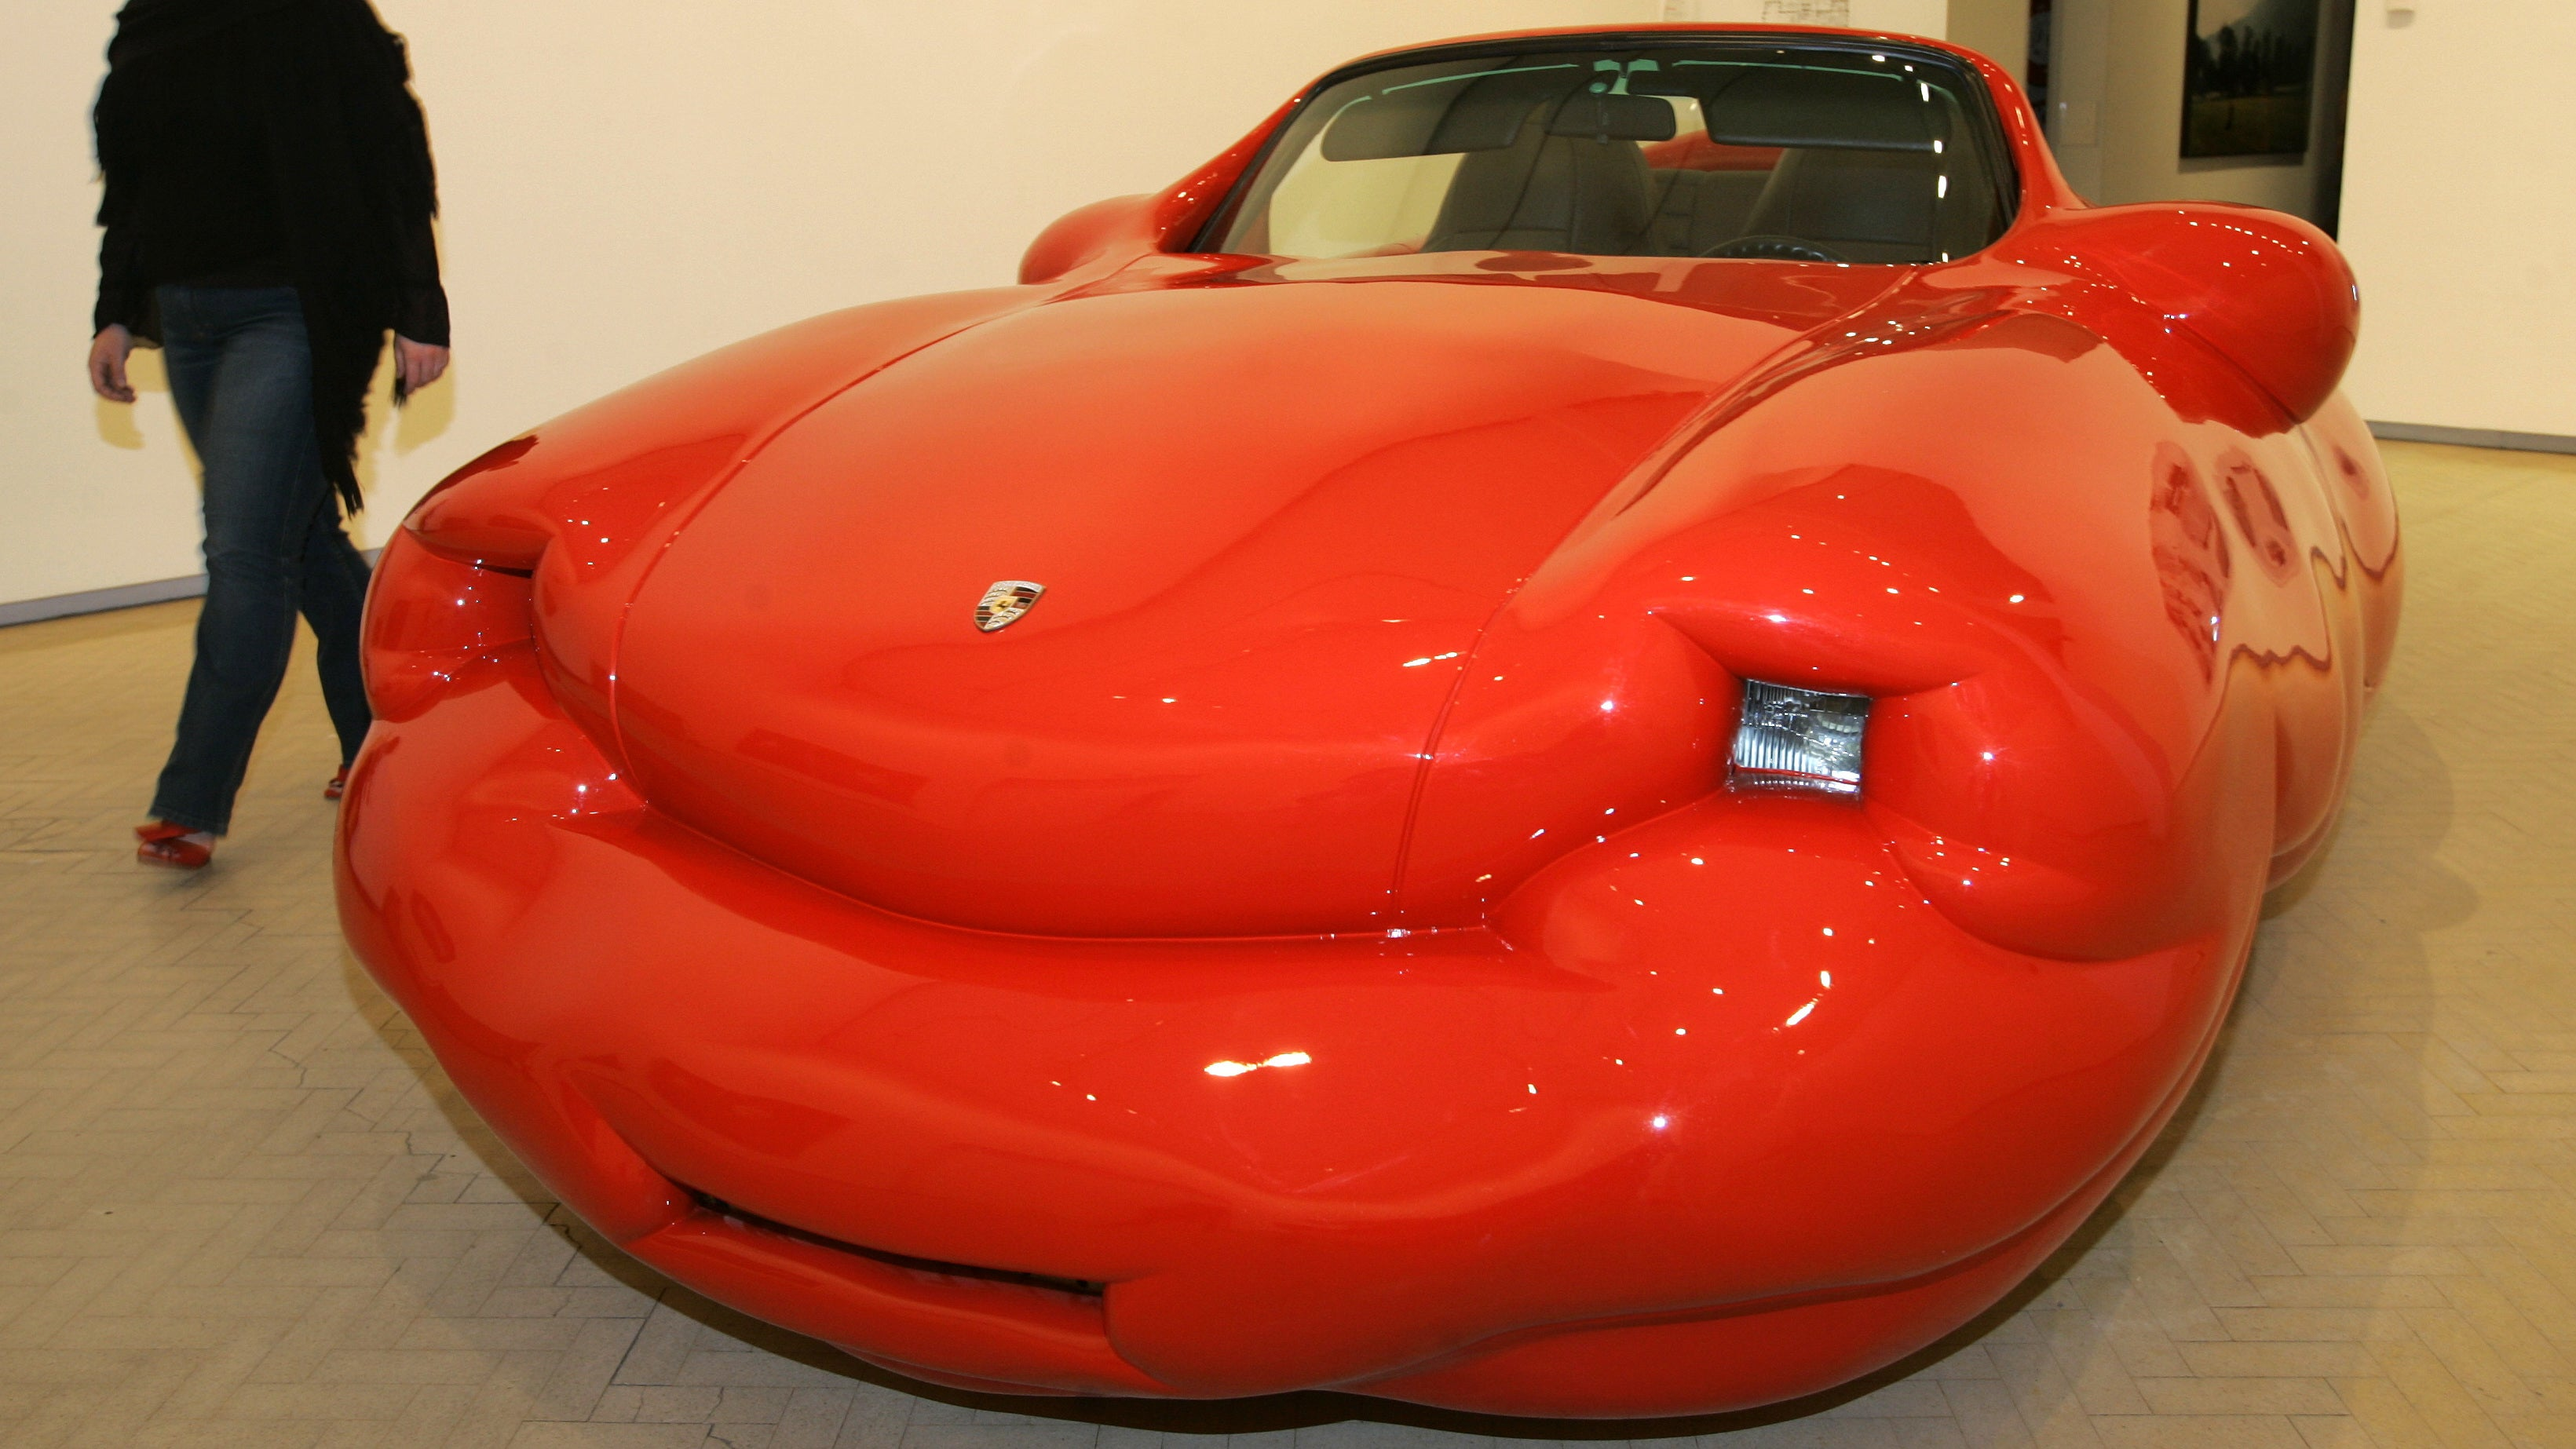 Erwin Wurm's Fat Cars Will Make You Really Uncomfortable